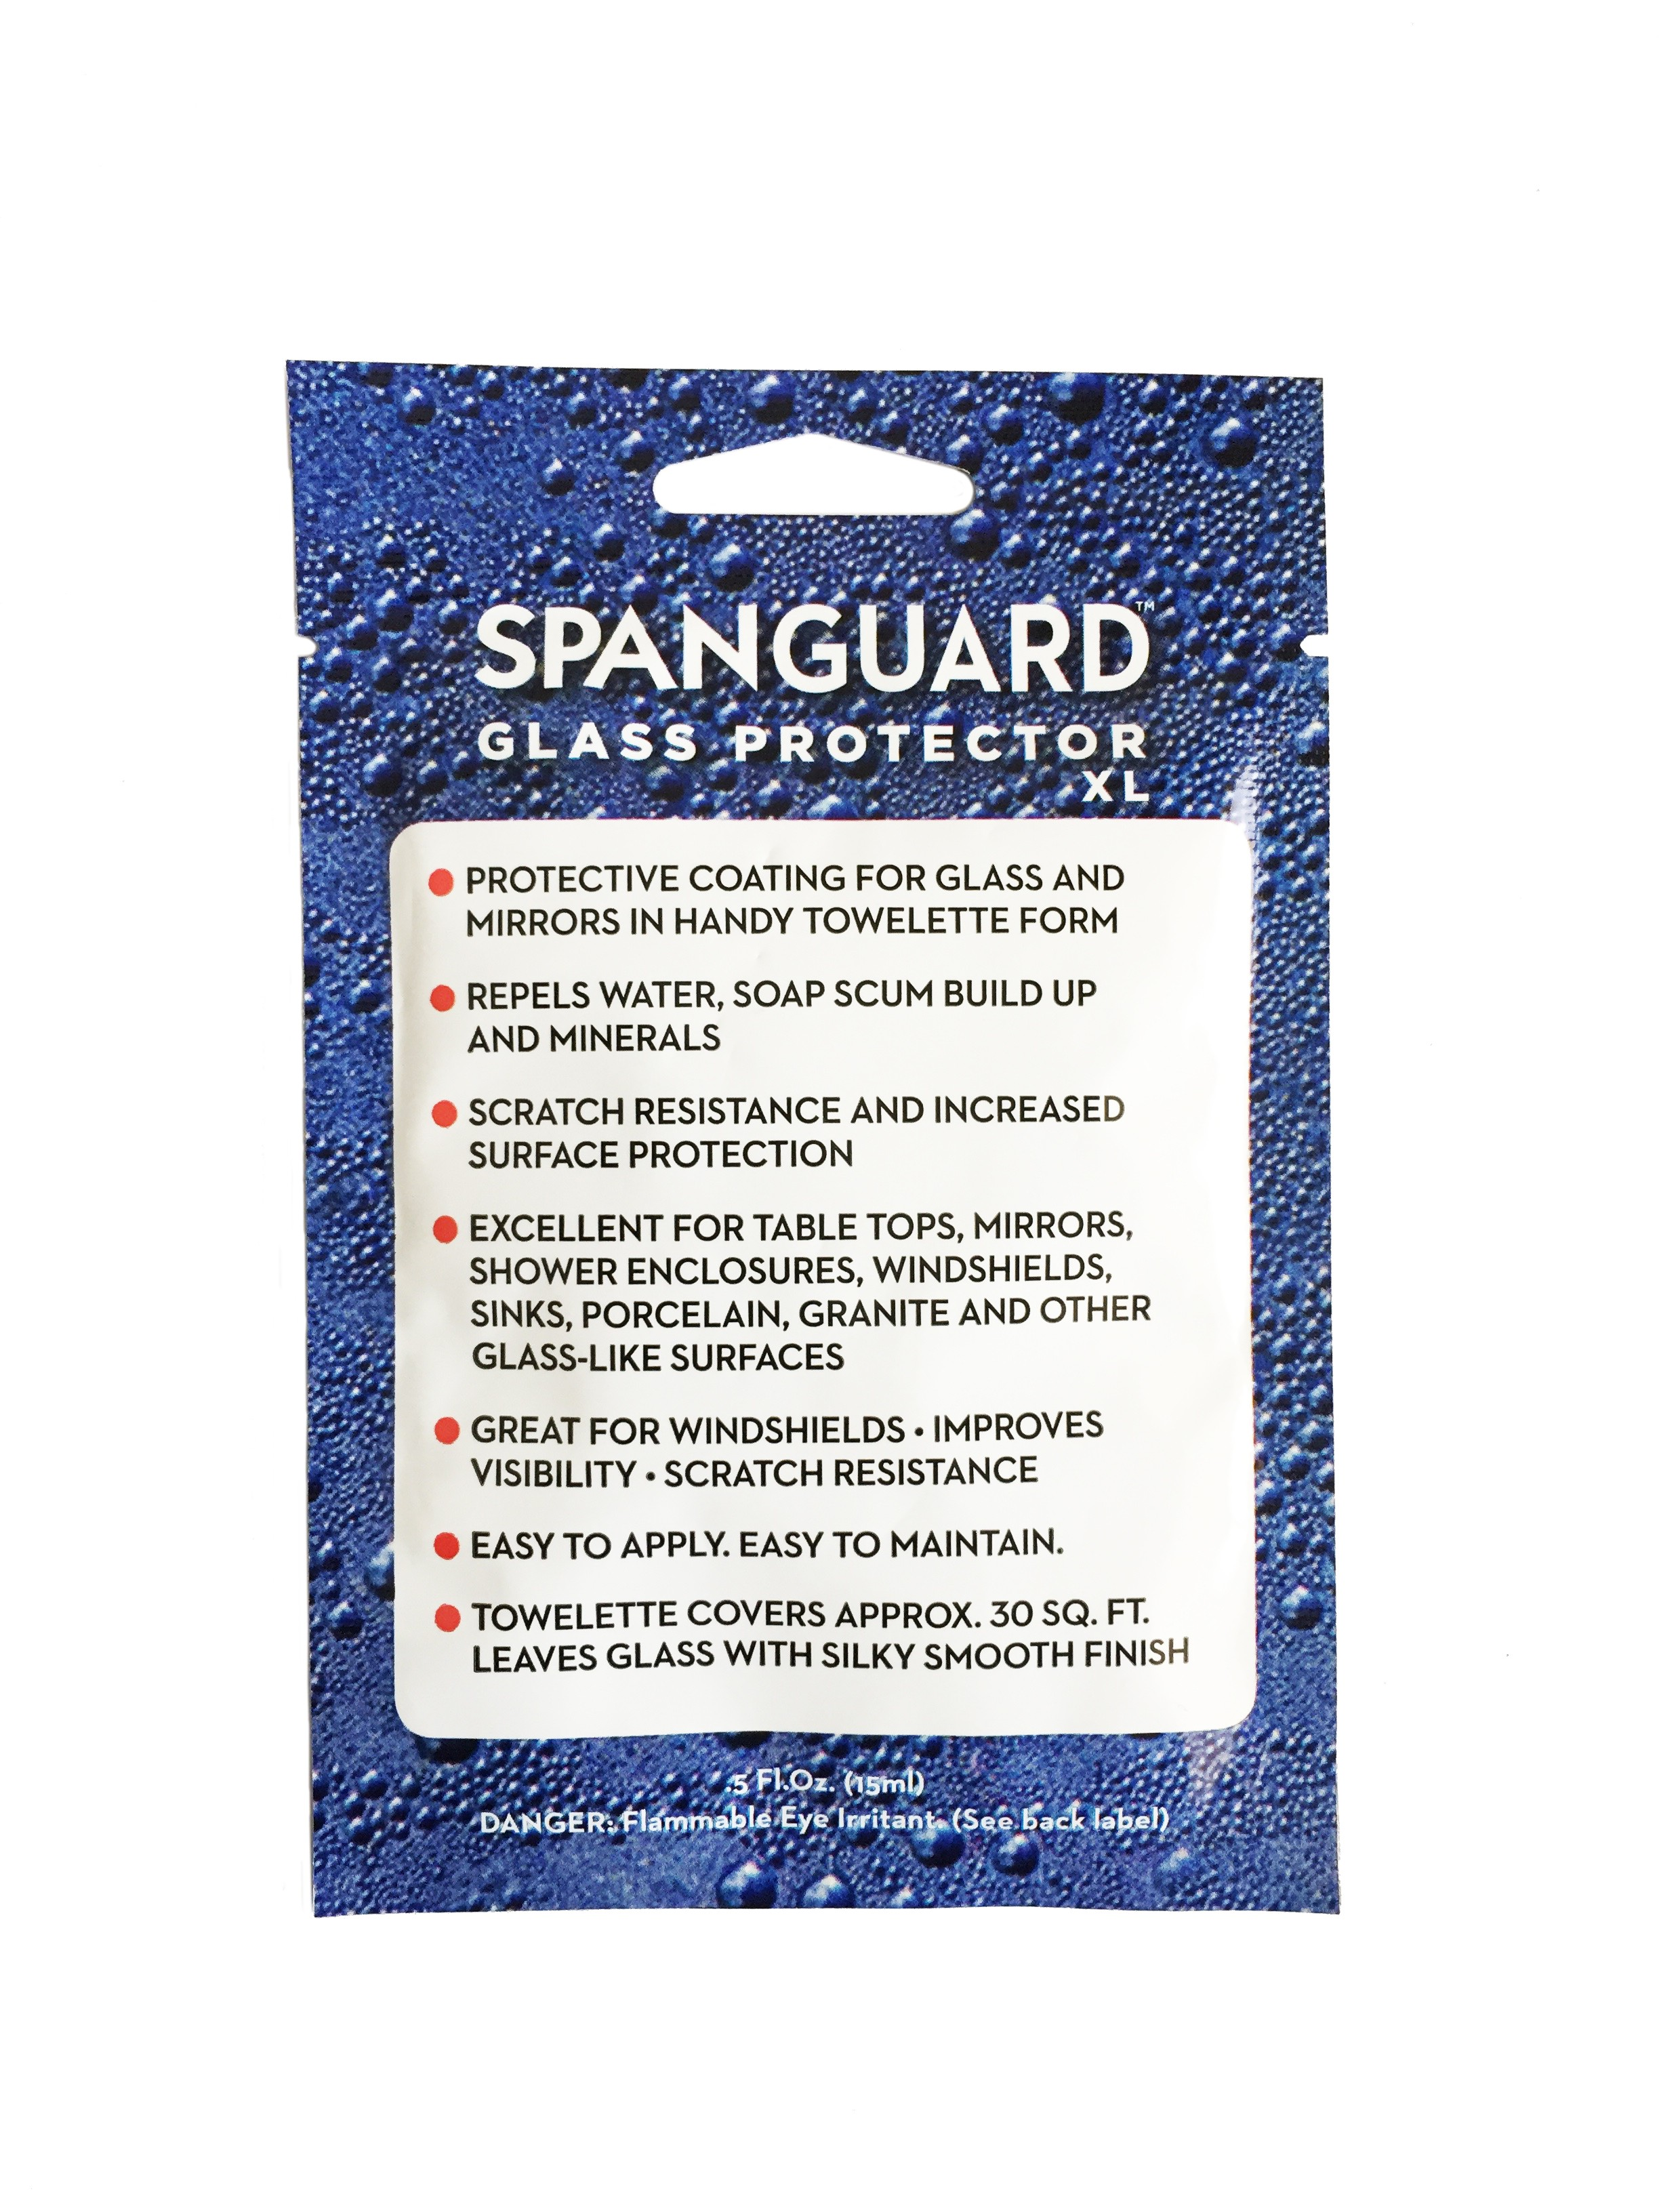 Spanguard Glass & Surface Coating